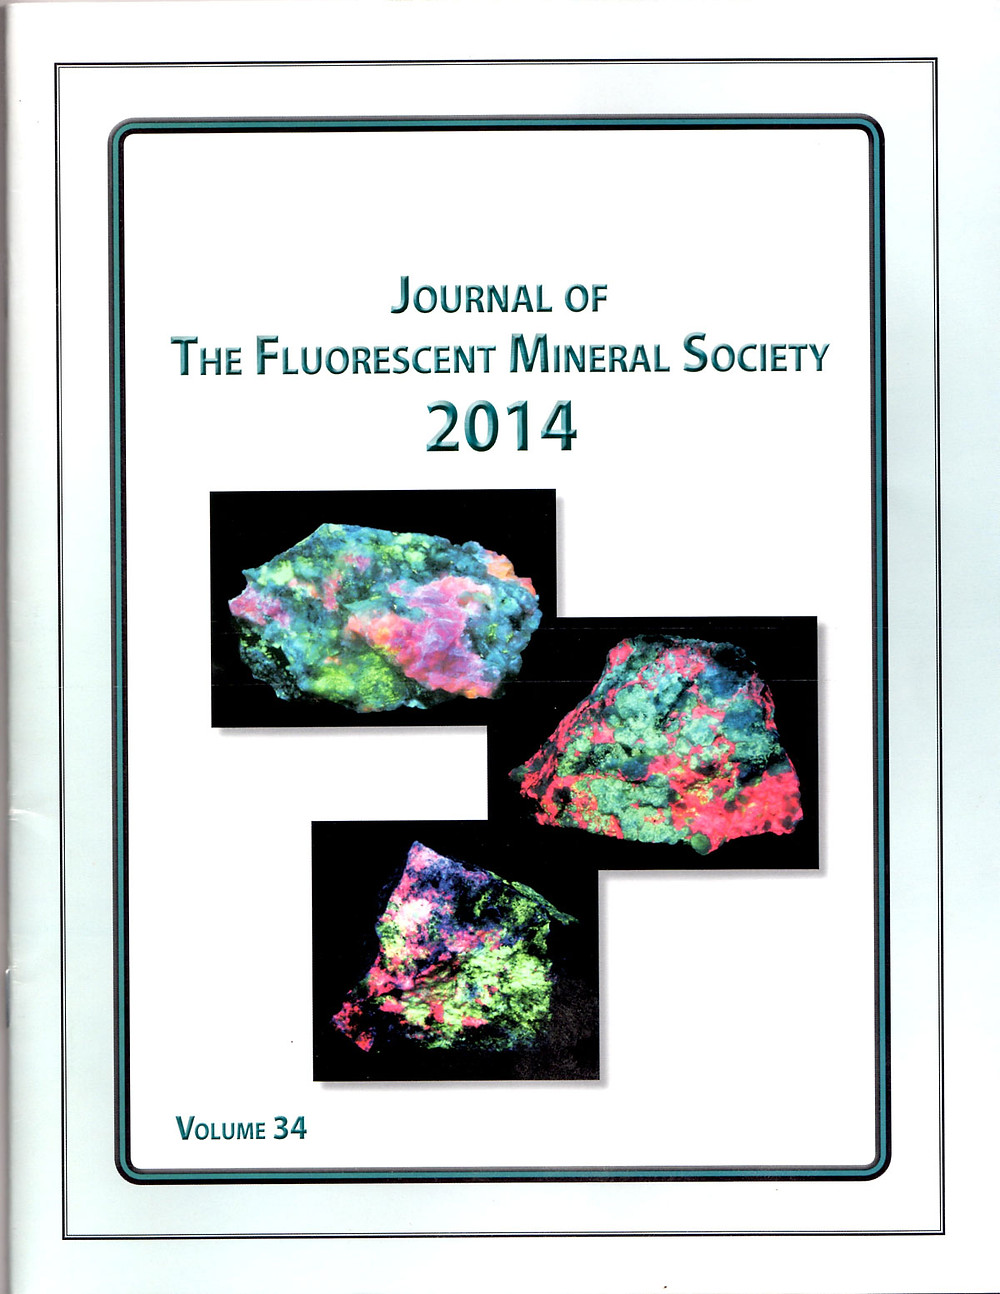 Journal of the Fluorescent Mineral Society